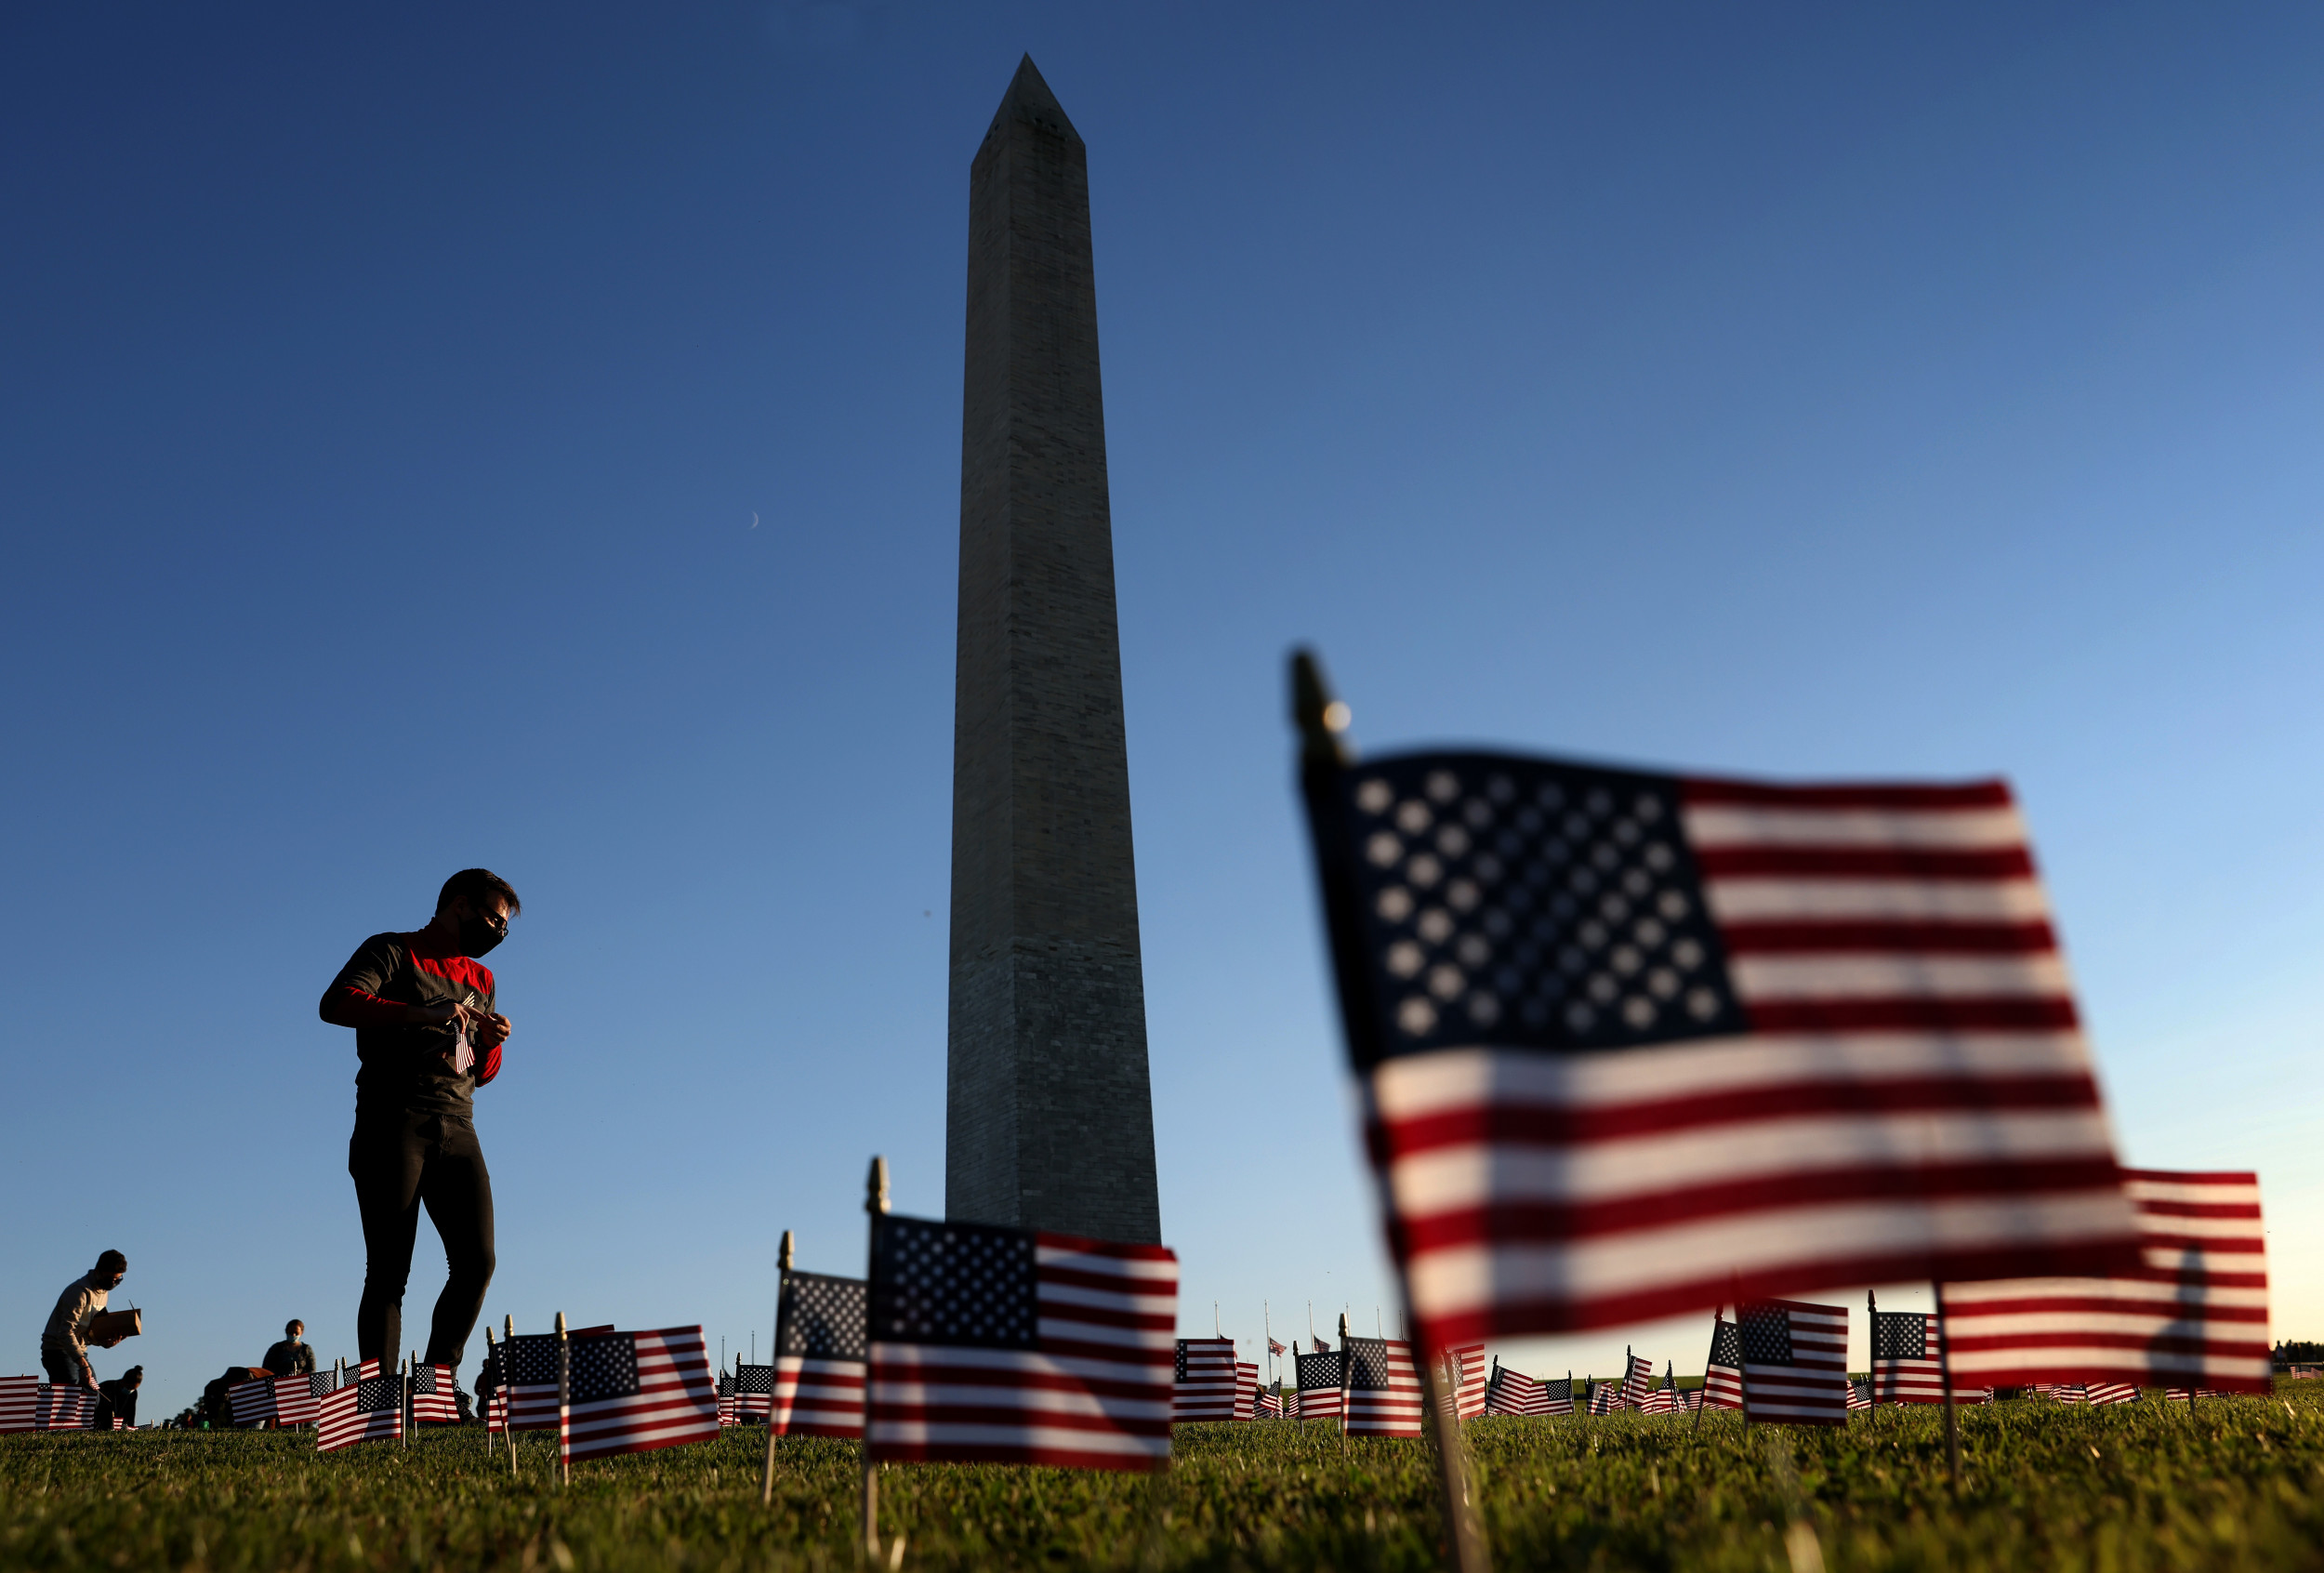 20,000 American Flags Placed at Washington Monument to Honor COVID Victims